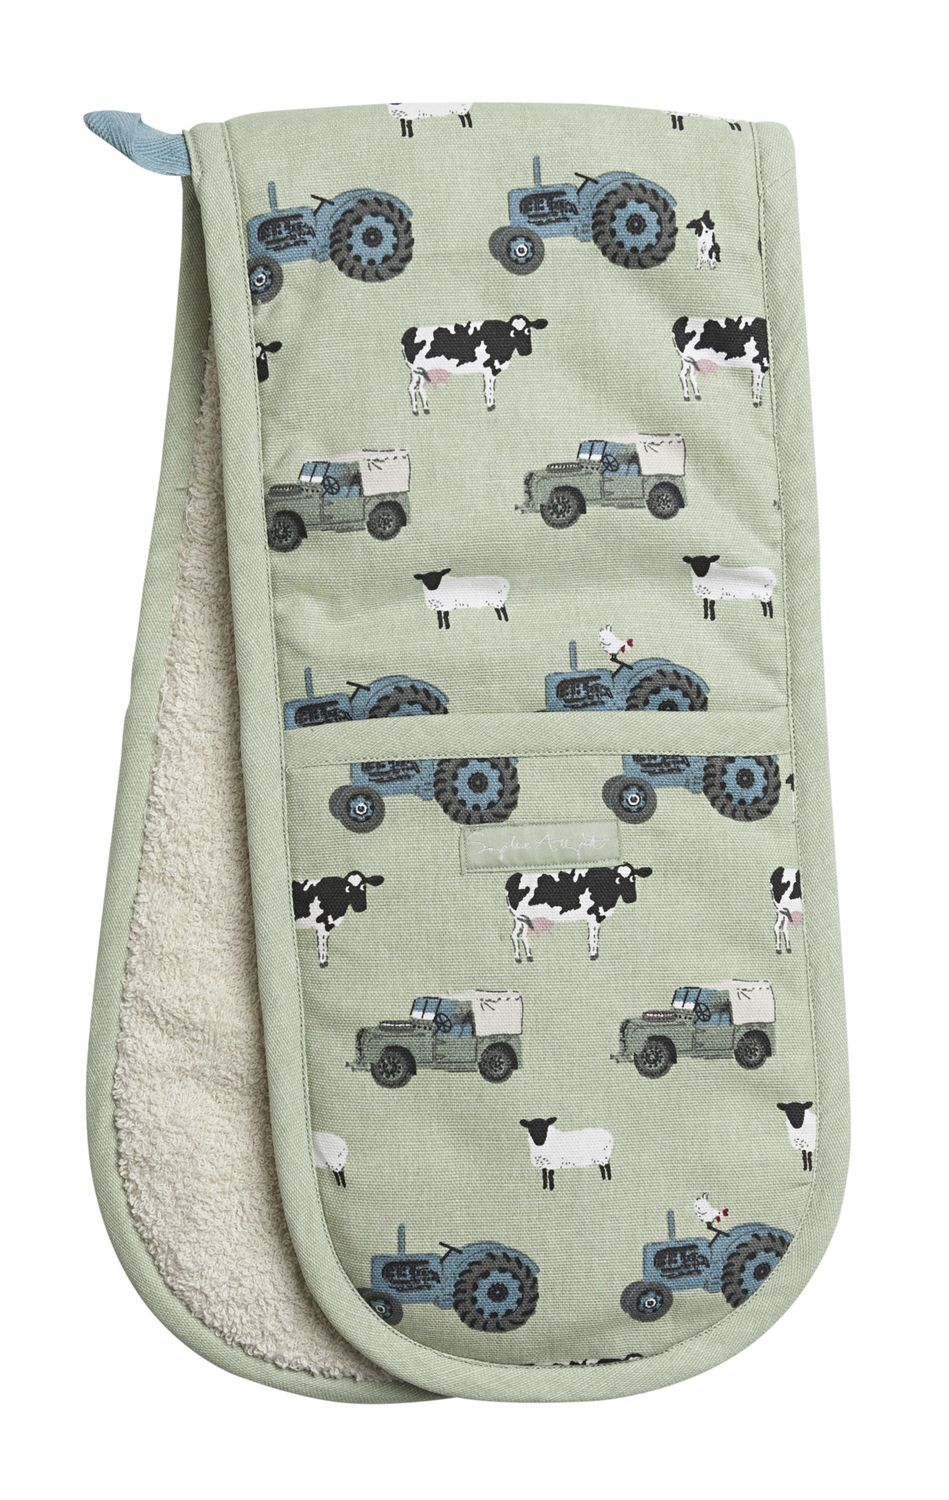 Double Oven Glove - 'On The Farm'. Protect your hands from hot pans with this lovely pair of heat resistant Double Oven Gloves in our green 'On The Farm' design.  The Double Oven Gloves feature tractors, Land Rovers, sheep, chickens, cows and a sheepdog. A practical gift for getting those piping hot casseroles out of the oven and bound to appeal to farming families.